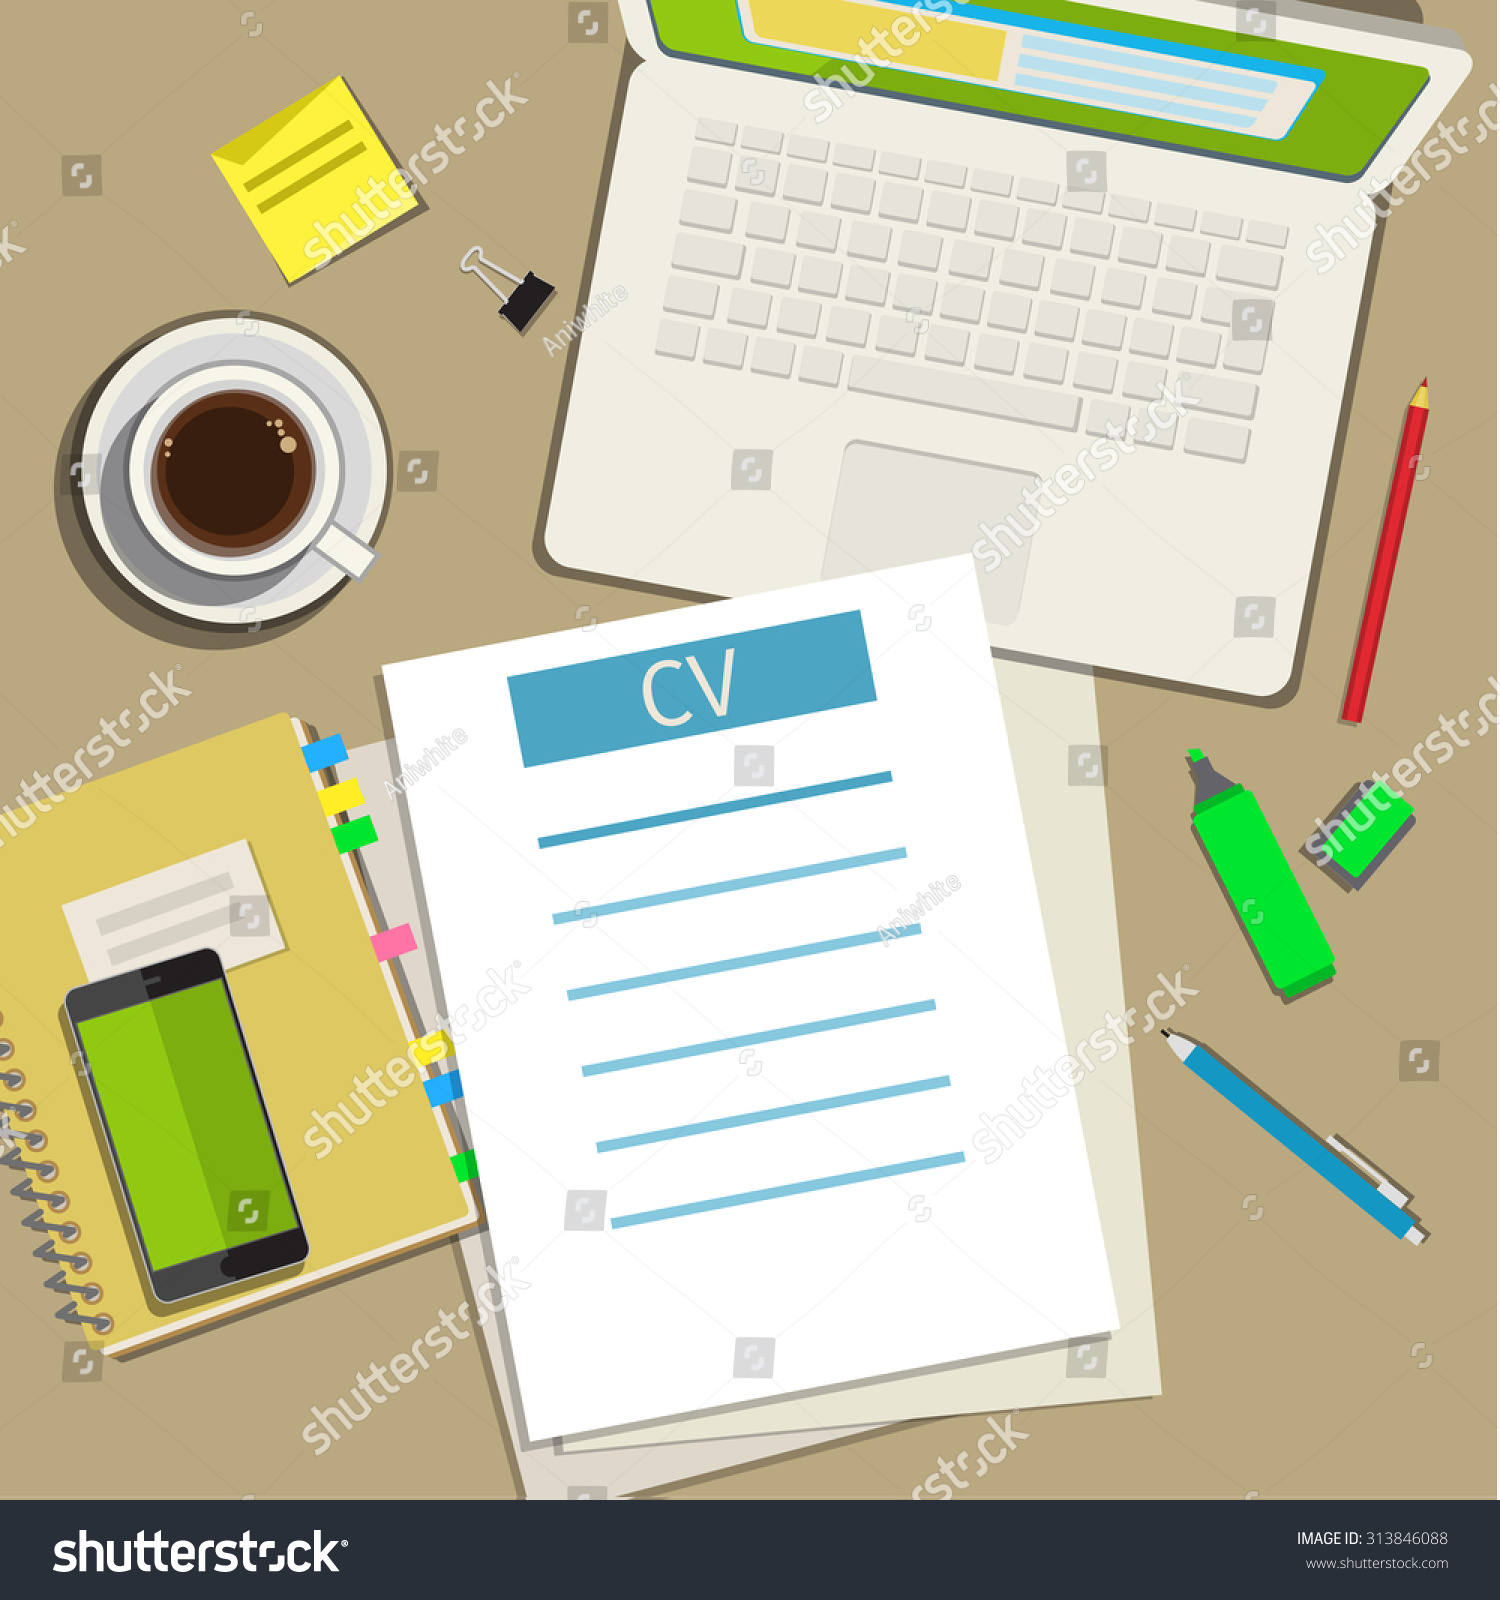 Writing Business Cv Resume Concept Flat Stock Vector 313846088